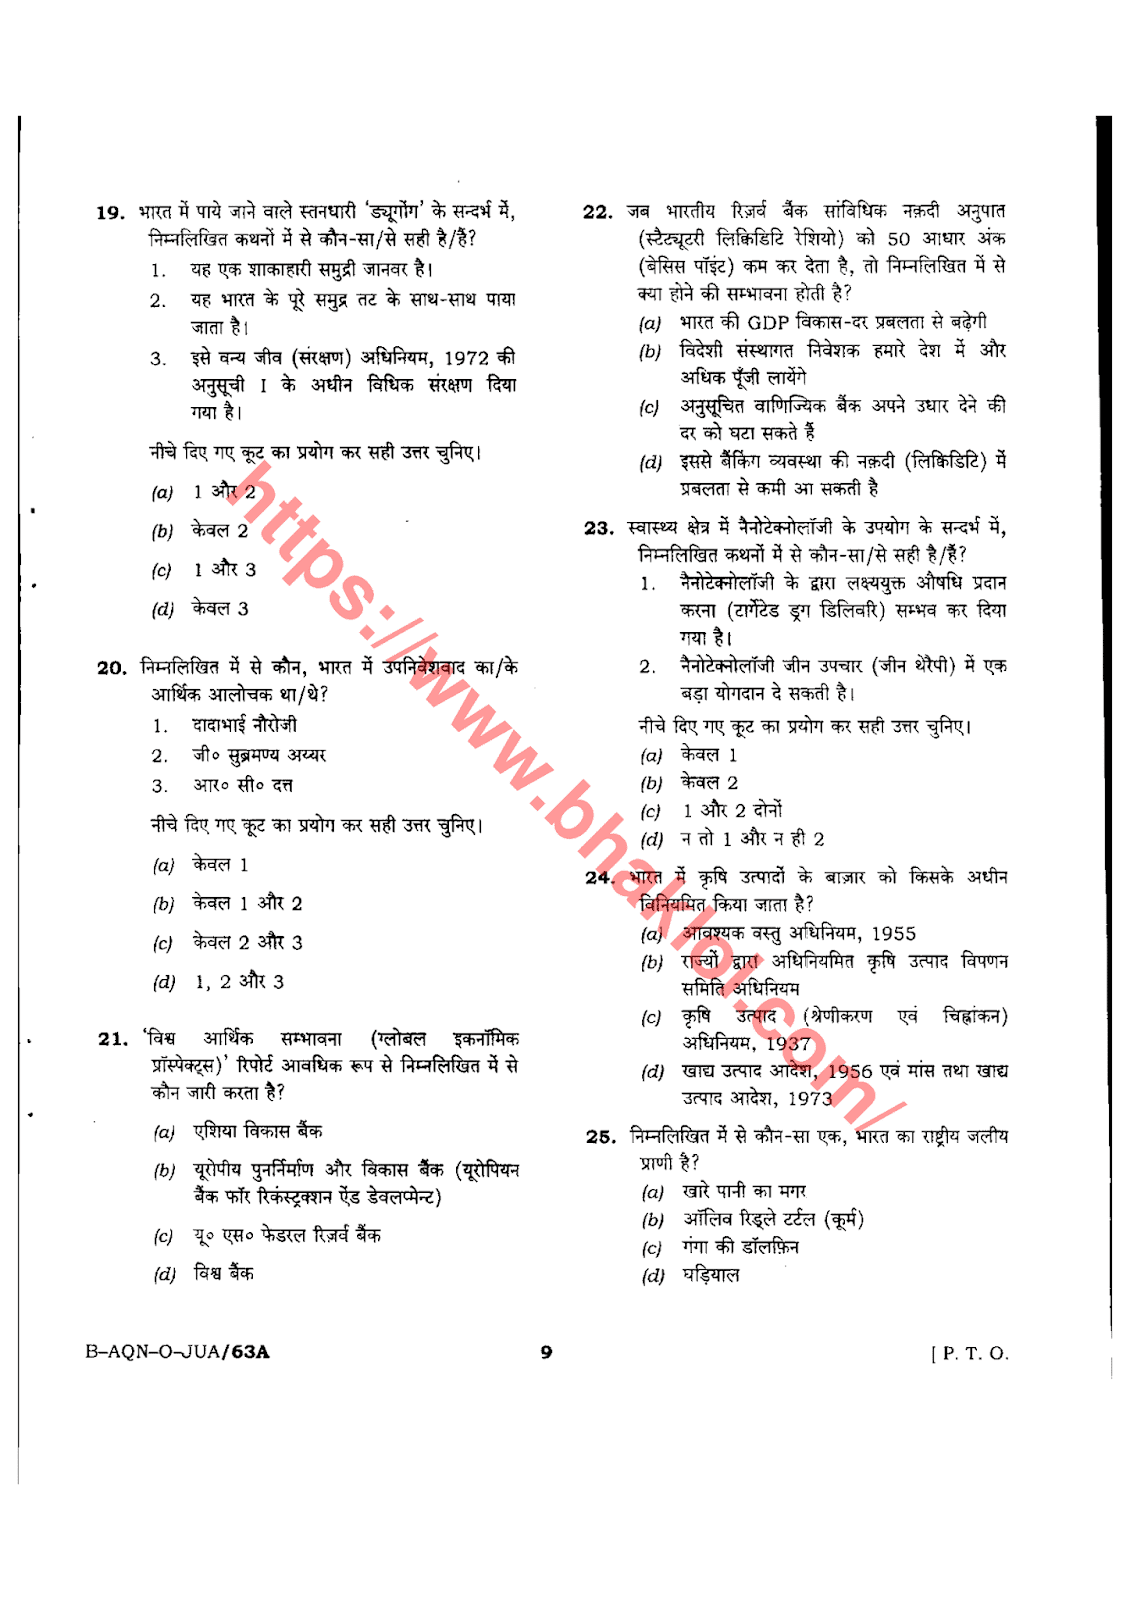 UPSC CSE(IAS) Prelims 2015 Question Paper with Answer Key